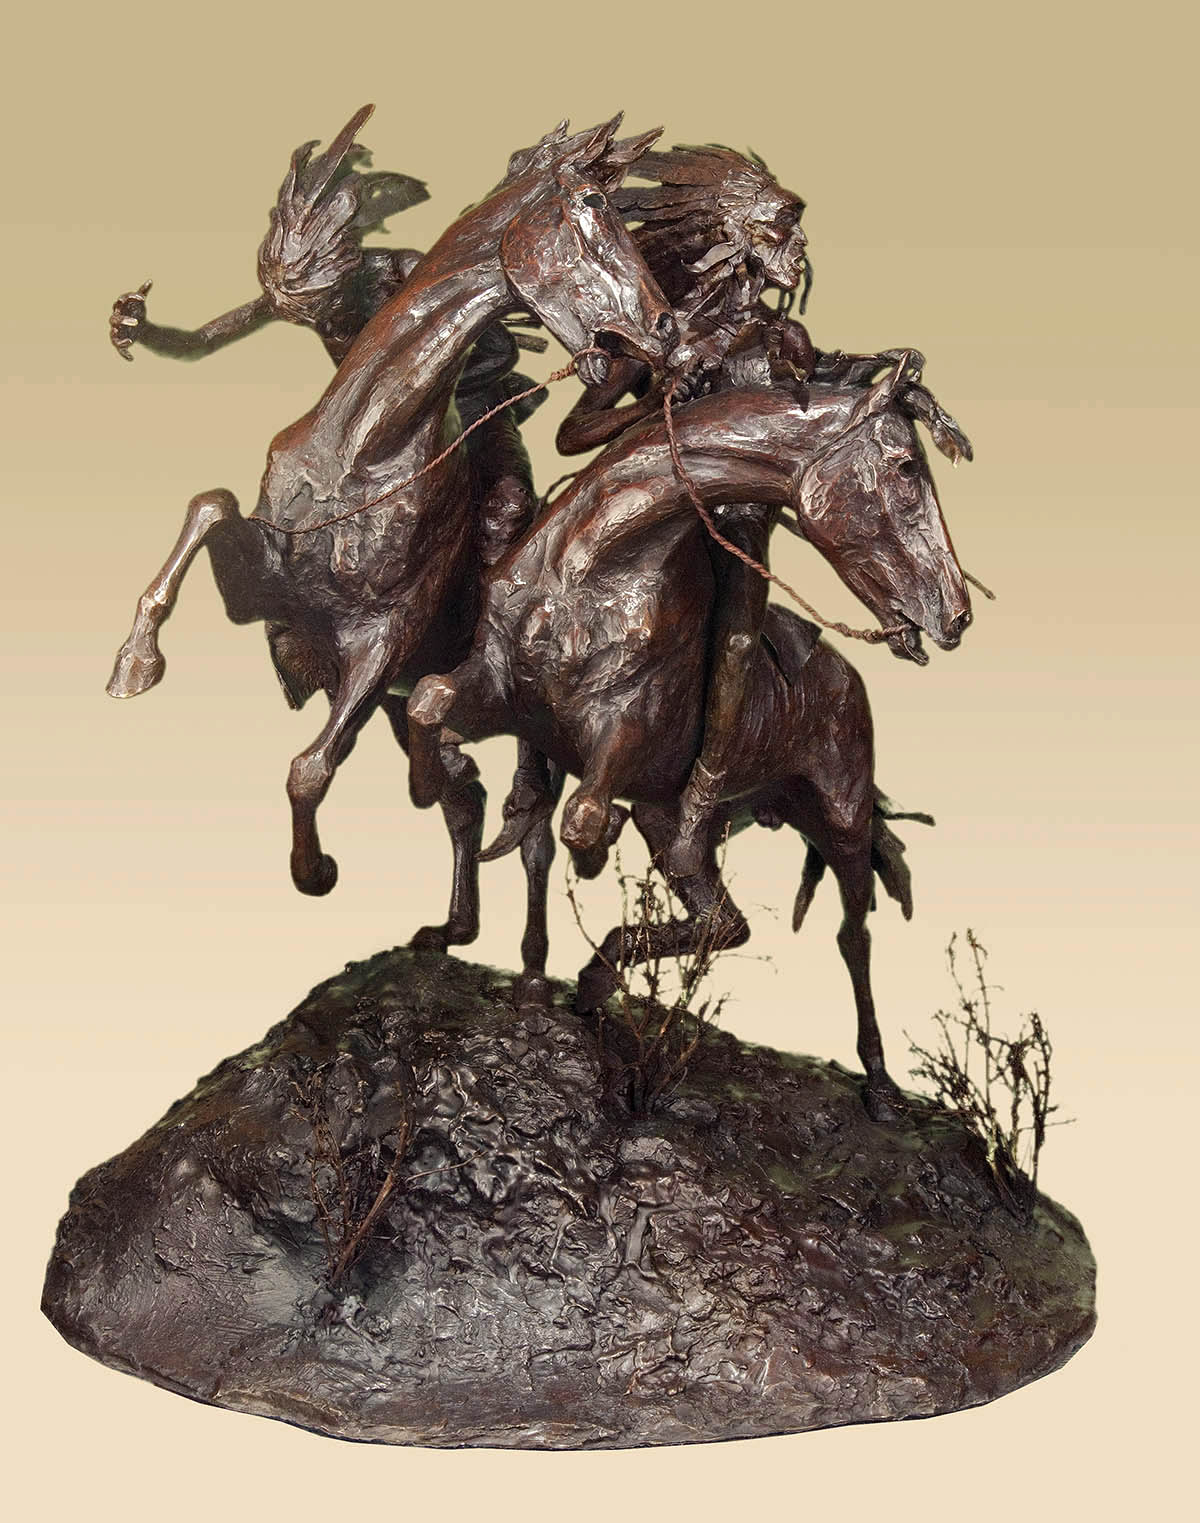 This bronze sculpture tells the story of an incident in 1874 that took place at Adobe Walls, near the Canadian River. Mountain man Billy Dixon and friends were confronted by a group of Cheyenne...a skirmish ensued. Dixon decided to take a shot from nearly a mile away and hit his target.